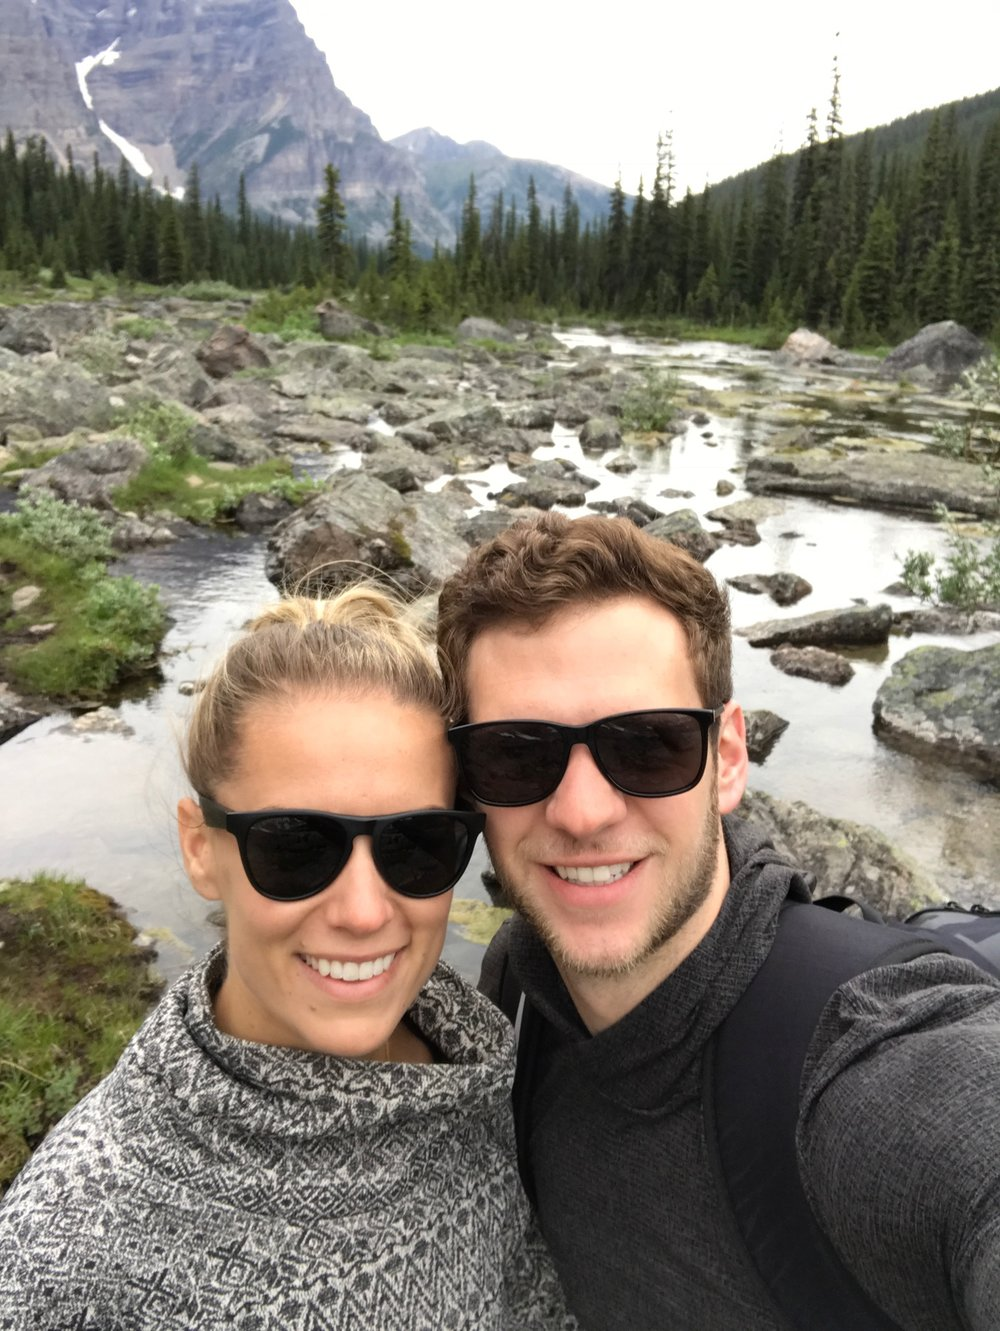 Couple taking a picture in Banff National Park